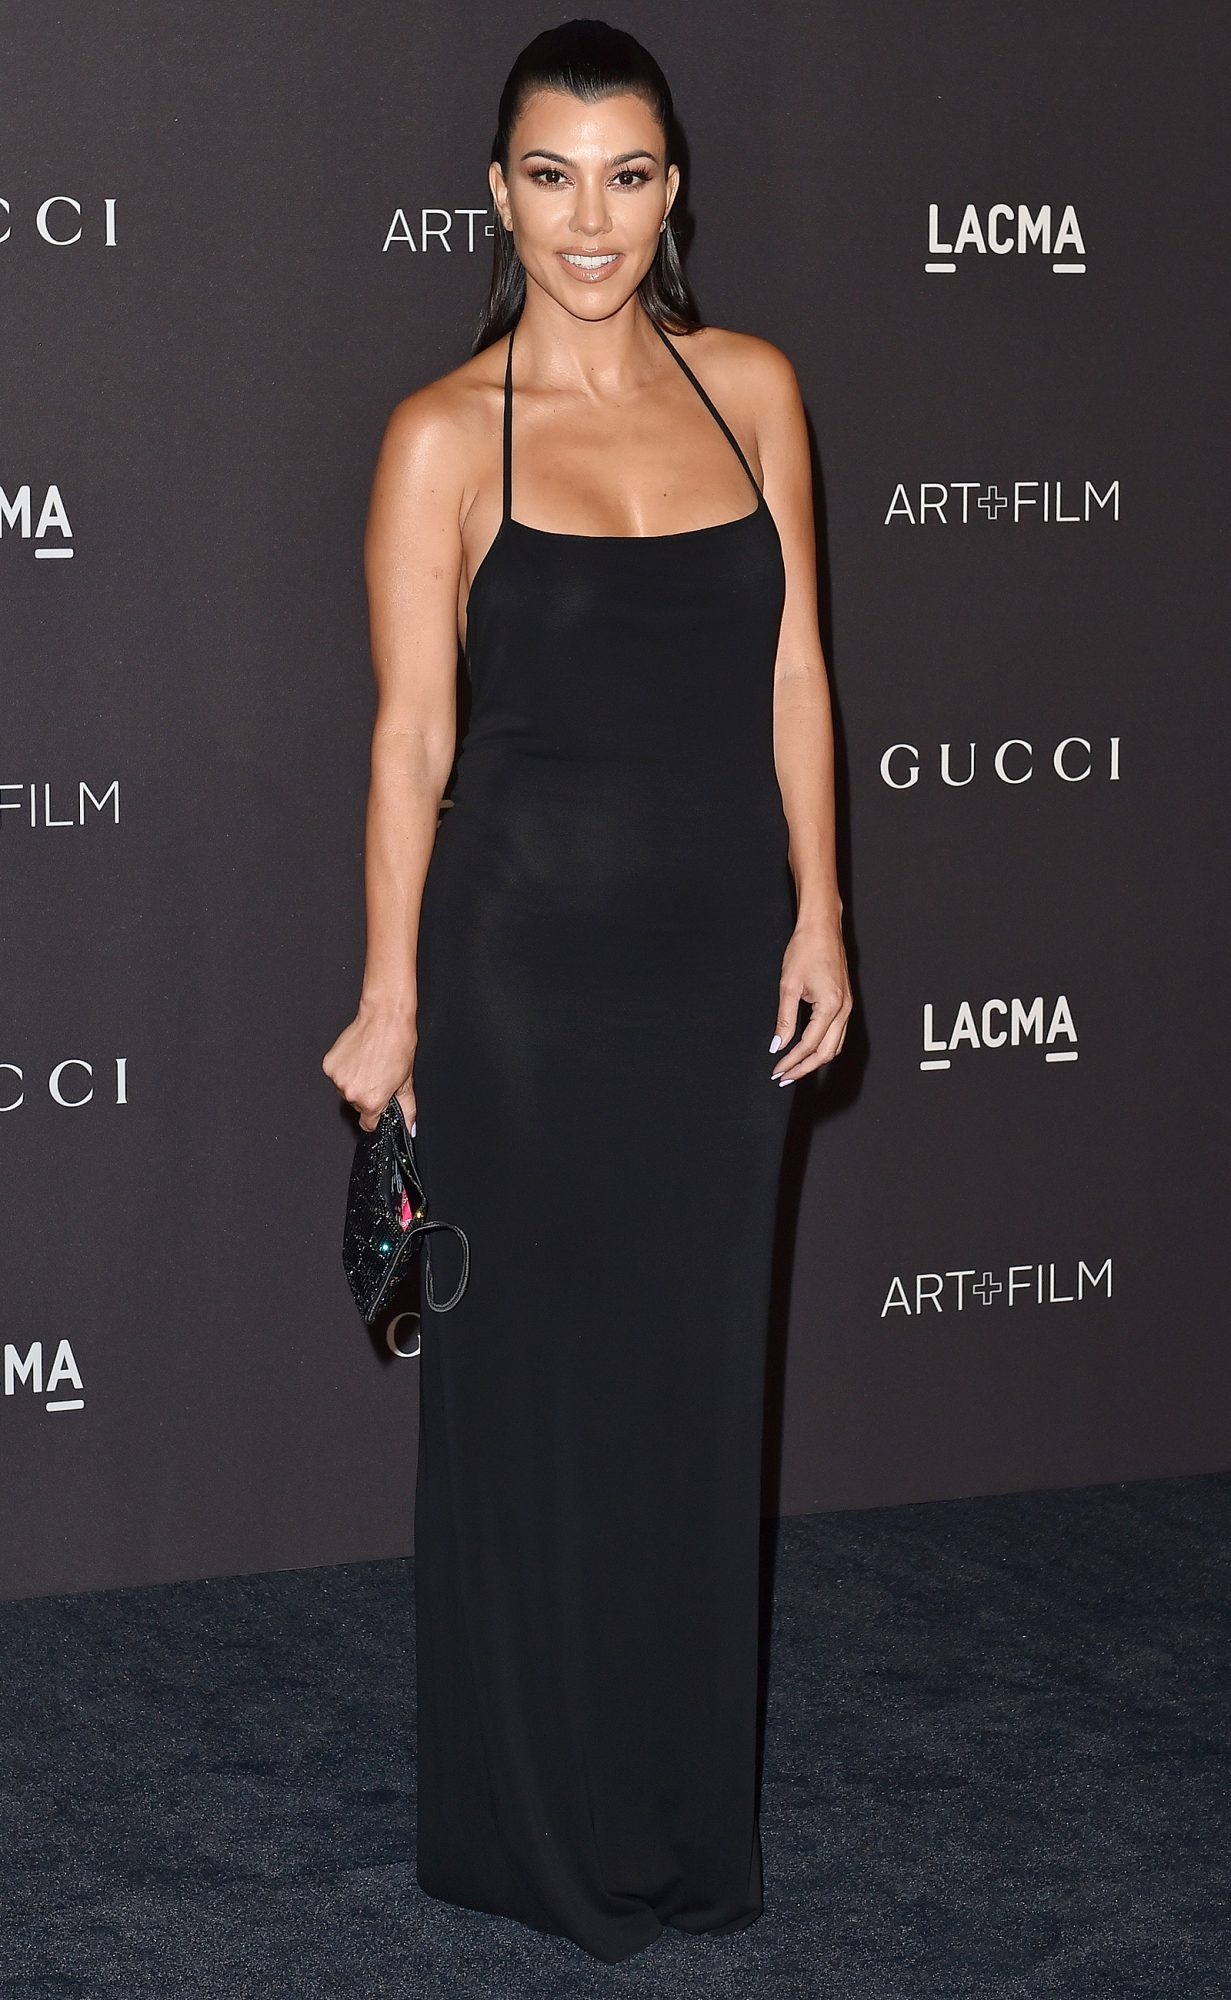 2018 LACMA Art + Film Gala - Arrivals